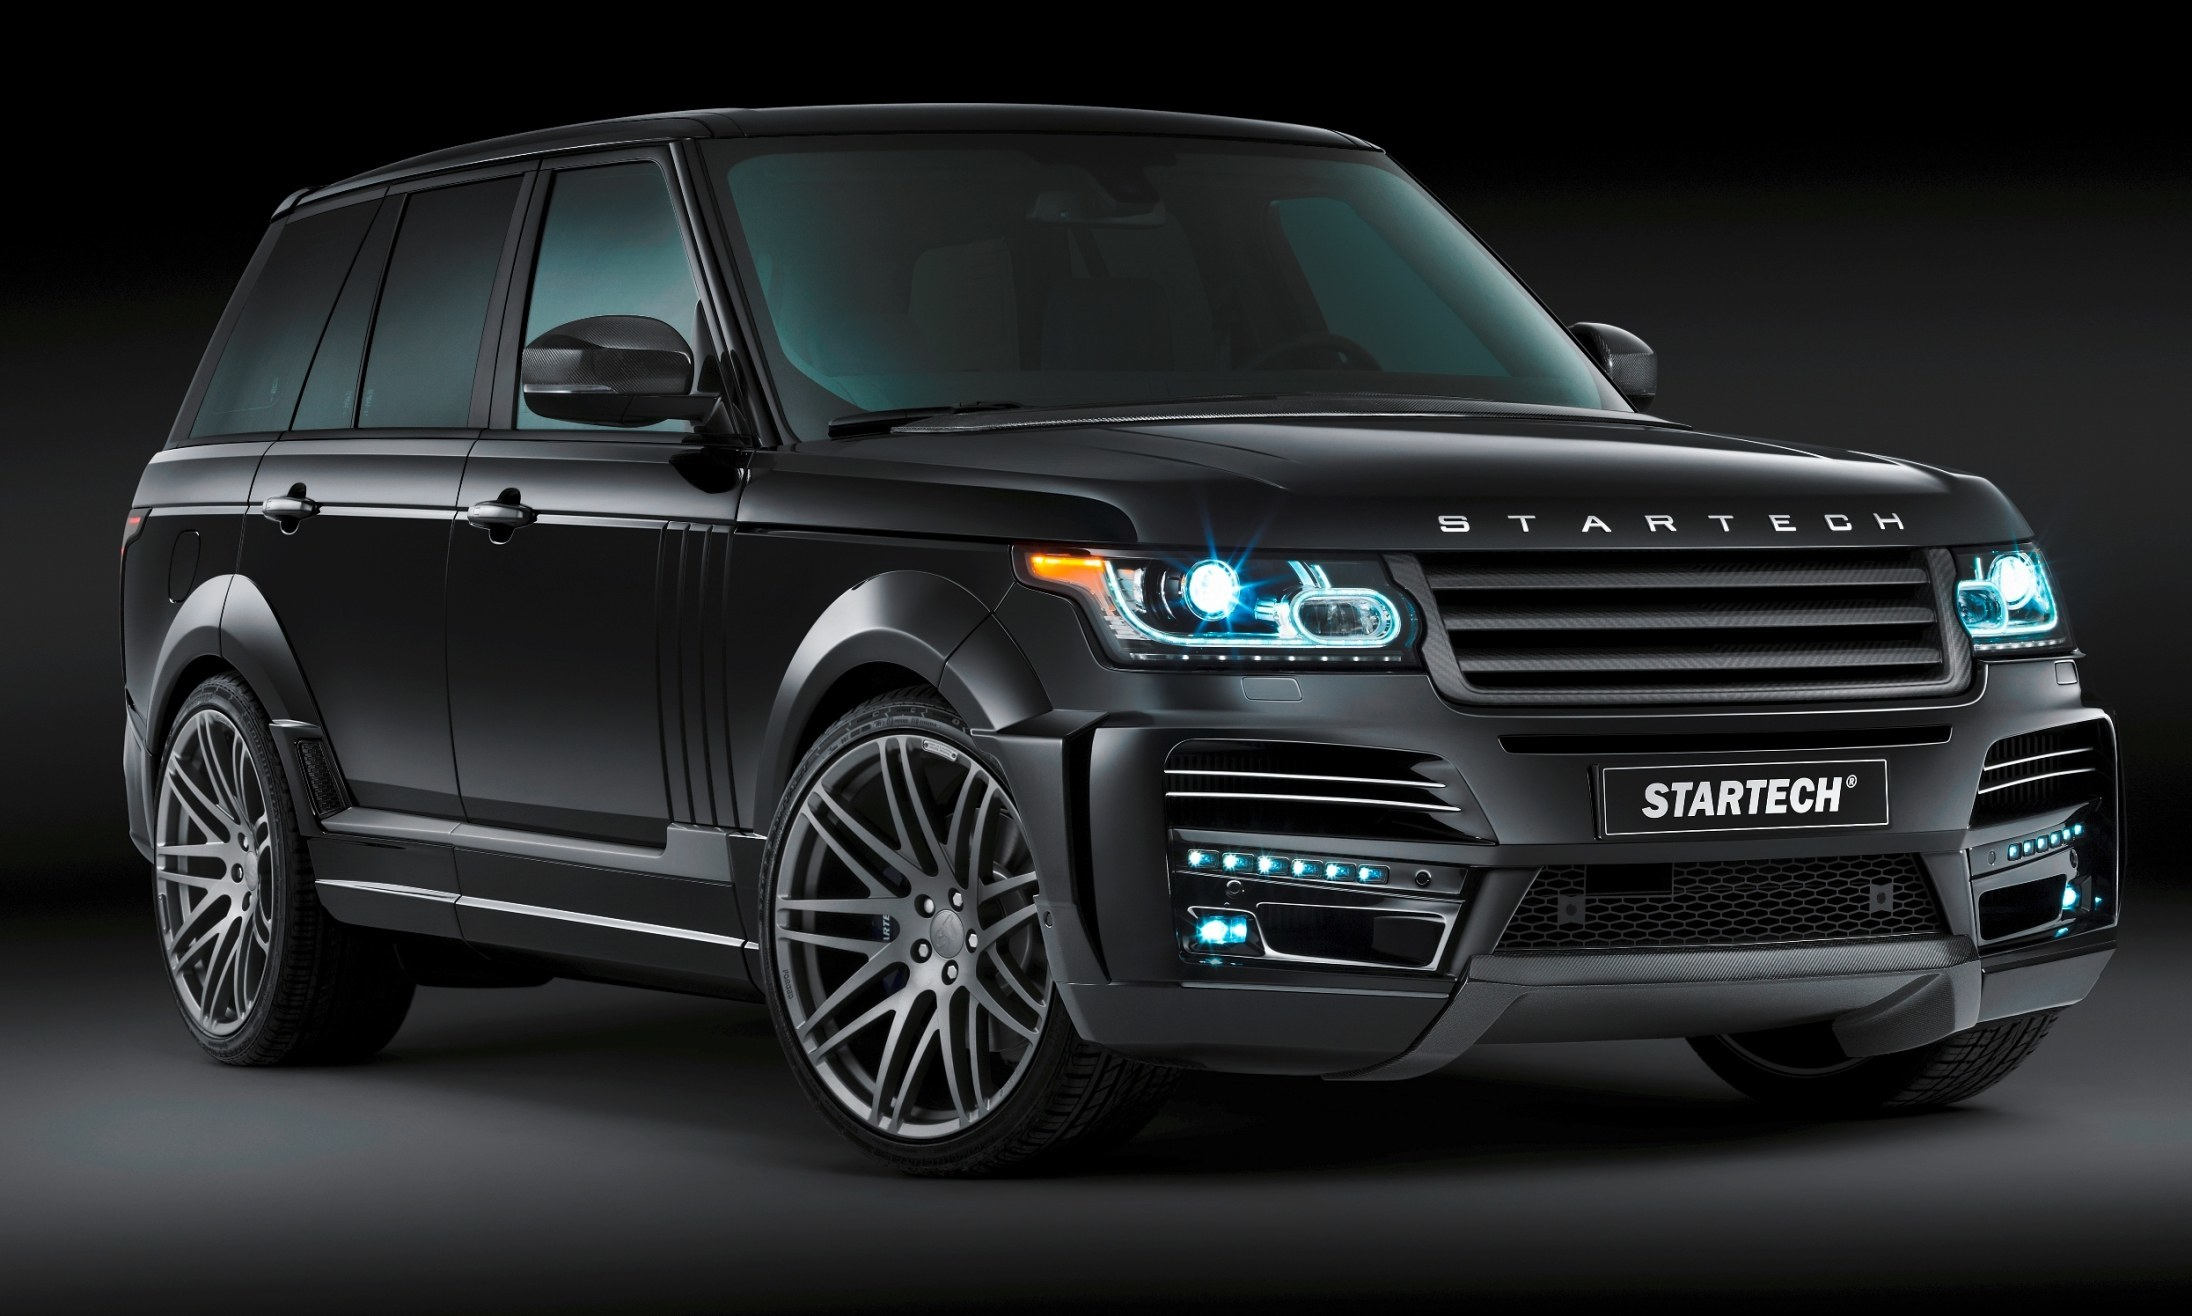 2017 Range Rover Sport Msrp >> 2013-2015 Range Rover By StarTech Brings Best of BRABUS Tech to Lux SUV King 64